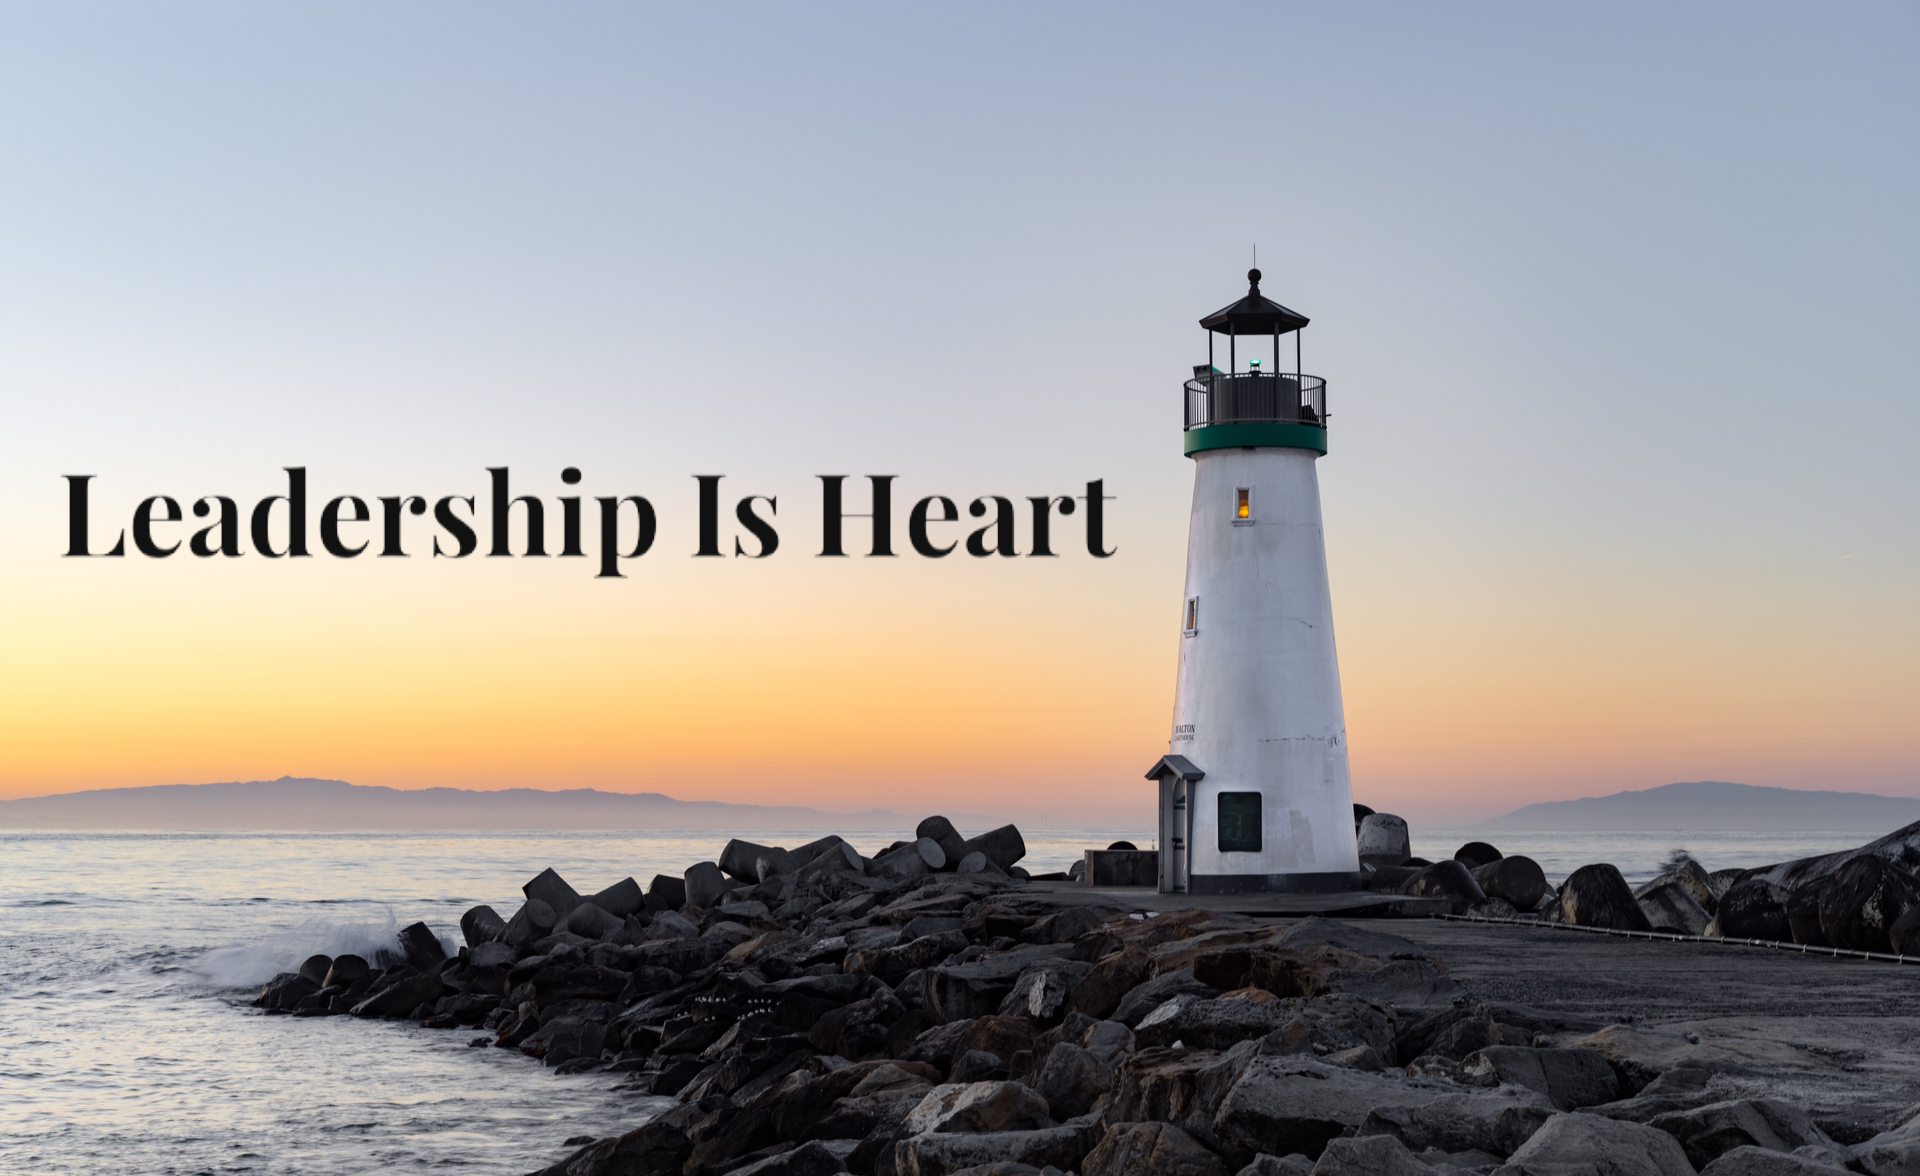 Leadership is Heart